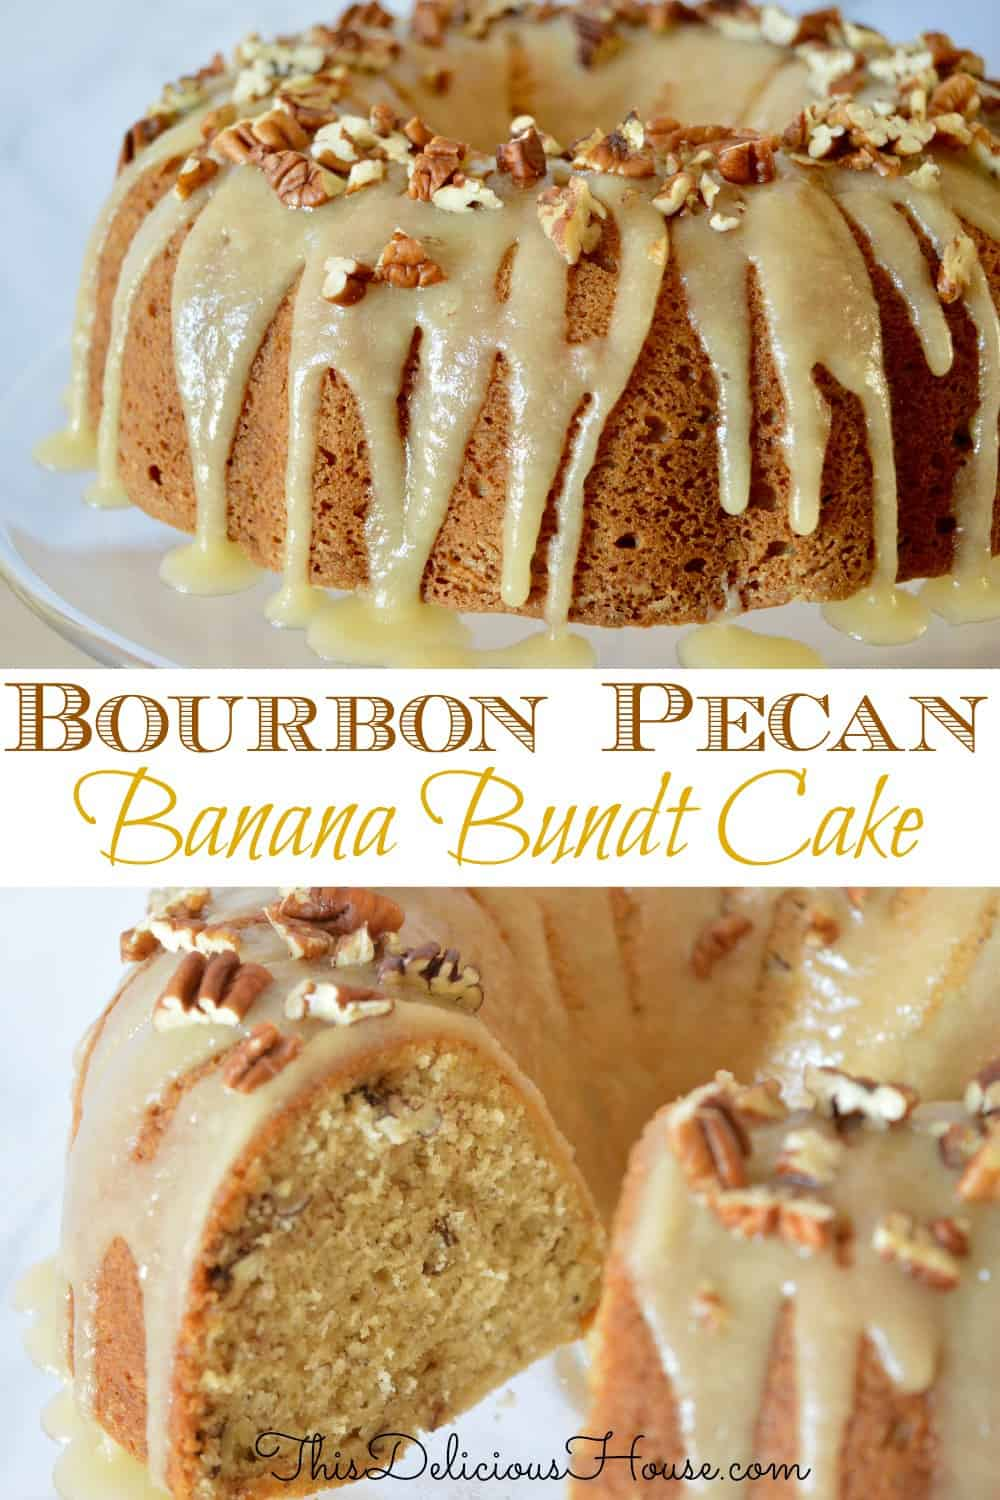 Bourbon Pecan Banana Cake with Bourbon Butter Glaze Pinterest pin.